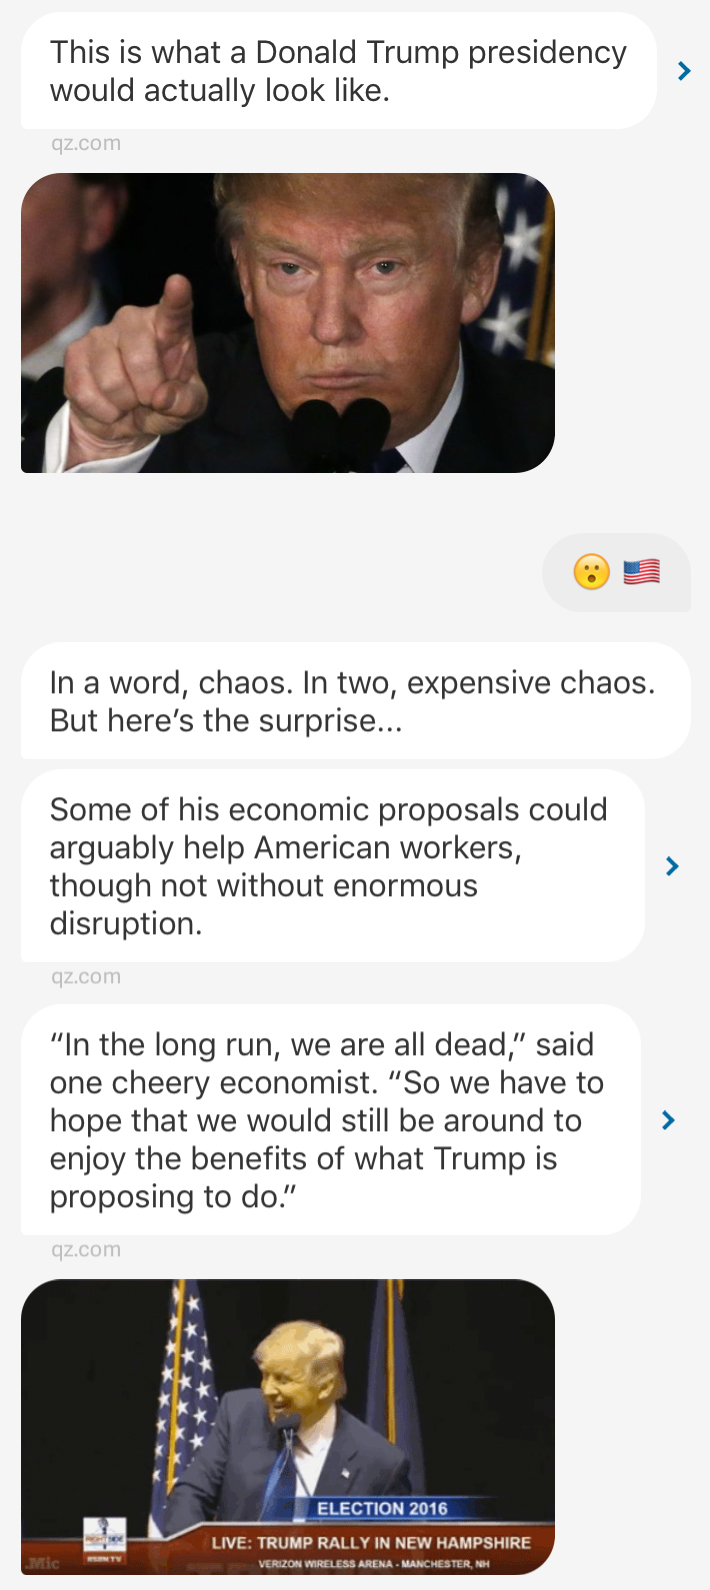 "The flow of a typical ""story"" in the Quartz app often contains multiple visual elements and lots of charm, like this story about Donald Trump."